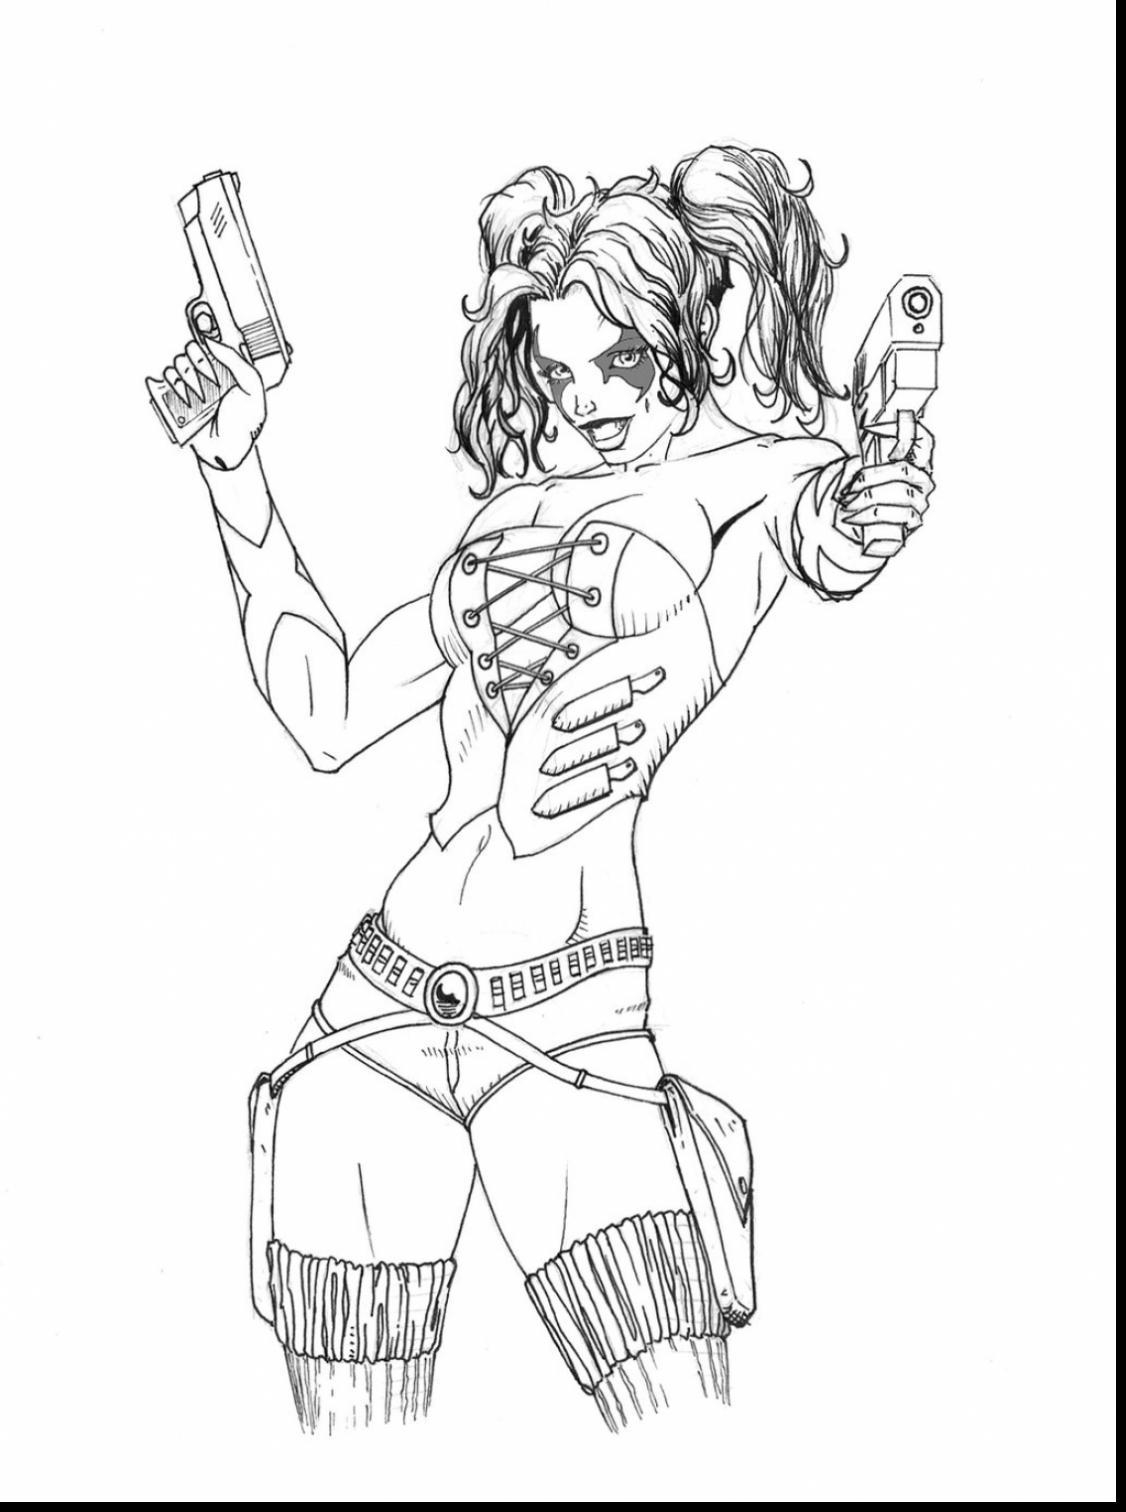 harley quinn and joker coloring pages - coloring page harley quinn